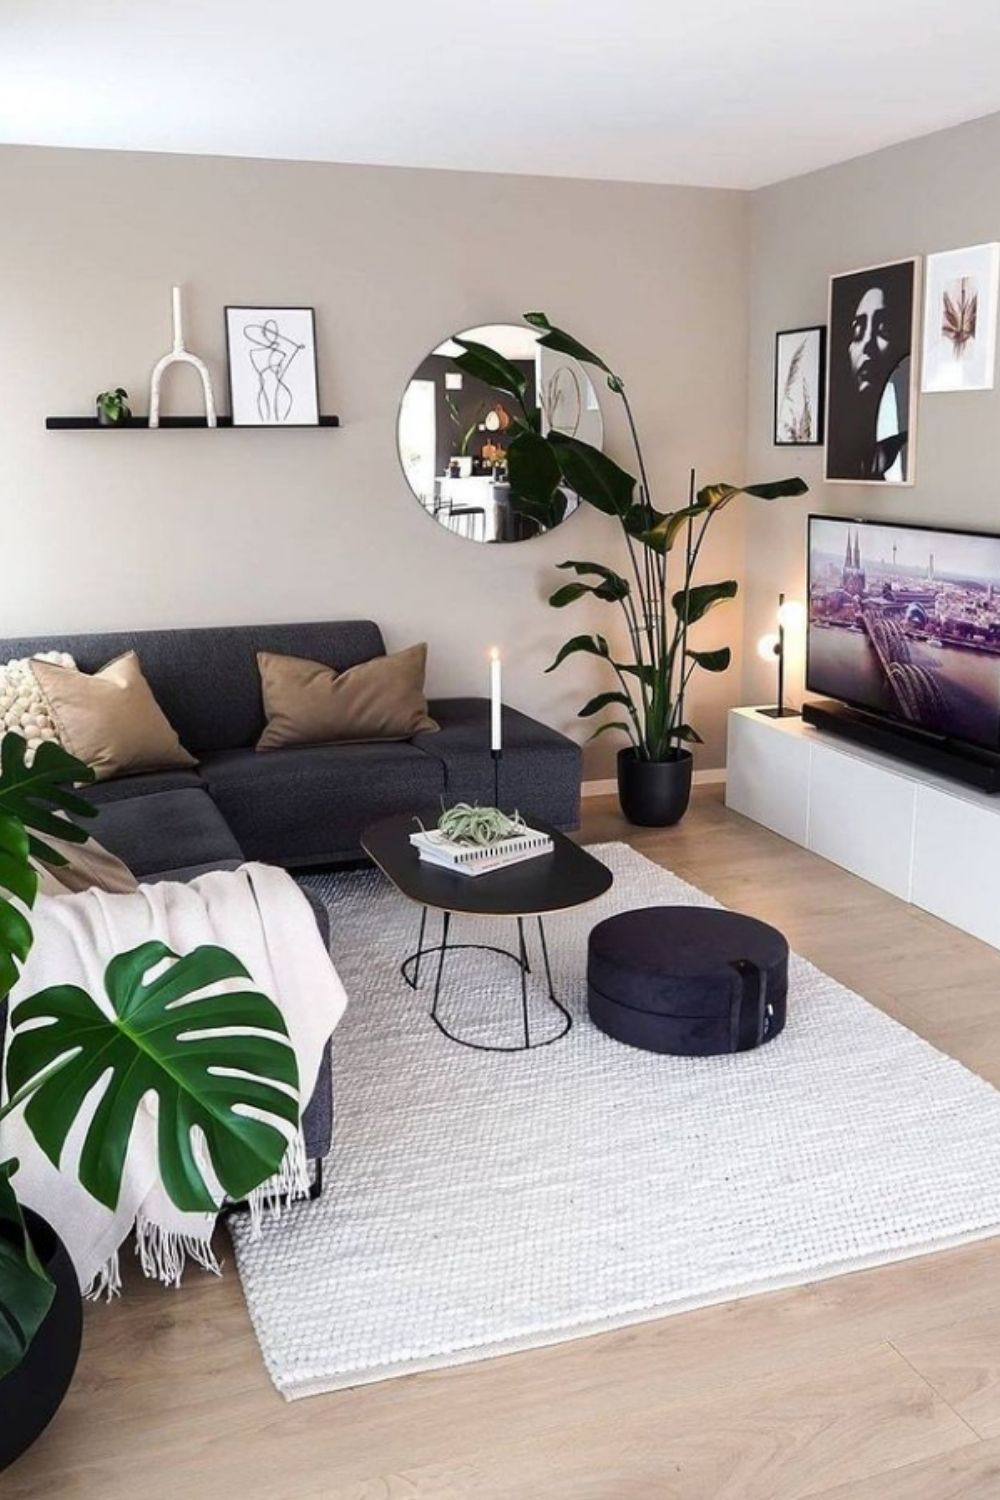 42 Home Decor Trends You Ll See Everywhere In 2021 In 2021 Home Decor Living Room Scandinavian Home Decor Trends